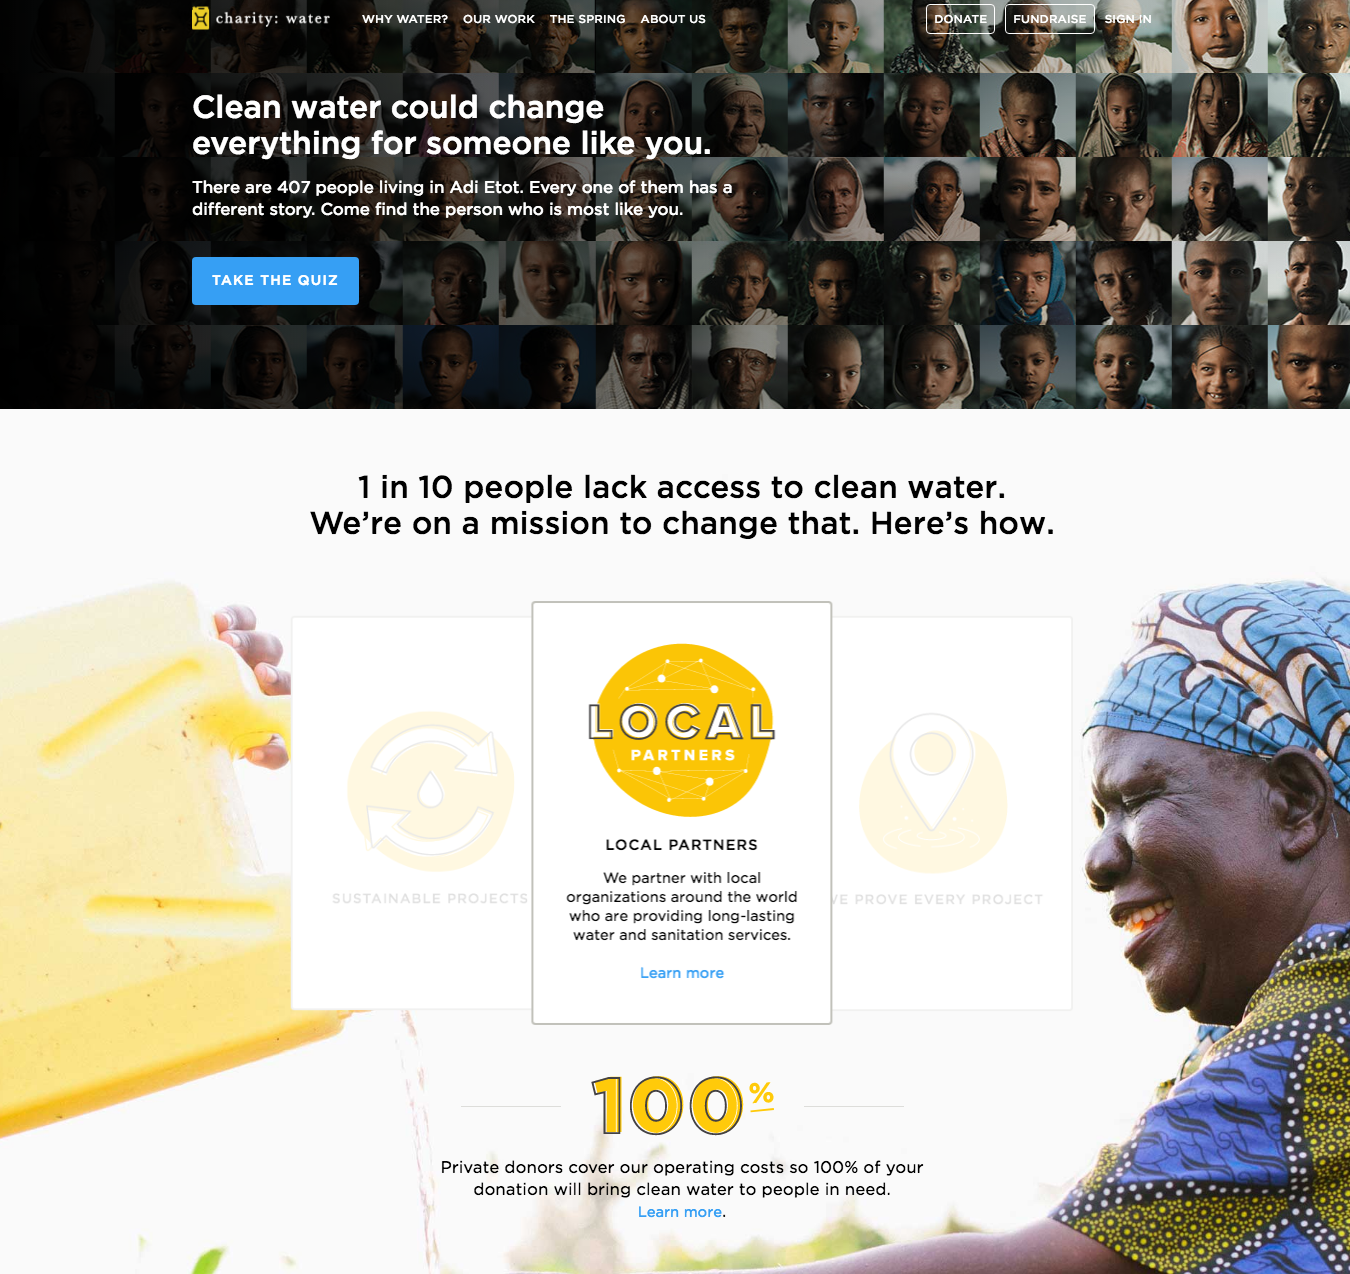 charity water-homepage-update.png  20 of the Best Website Homepage Design Examples charity 20water homepage update